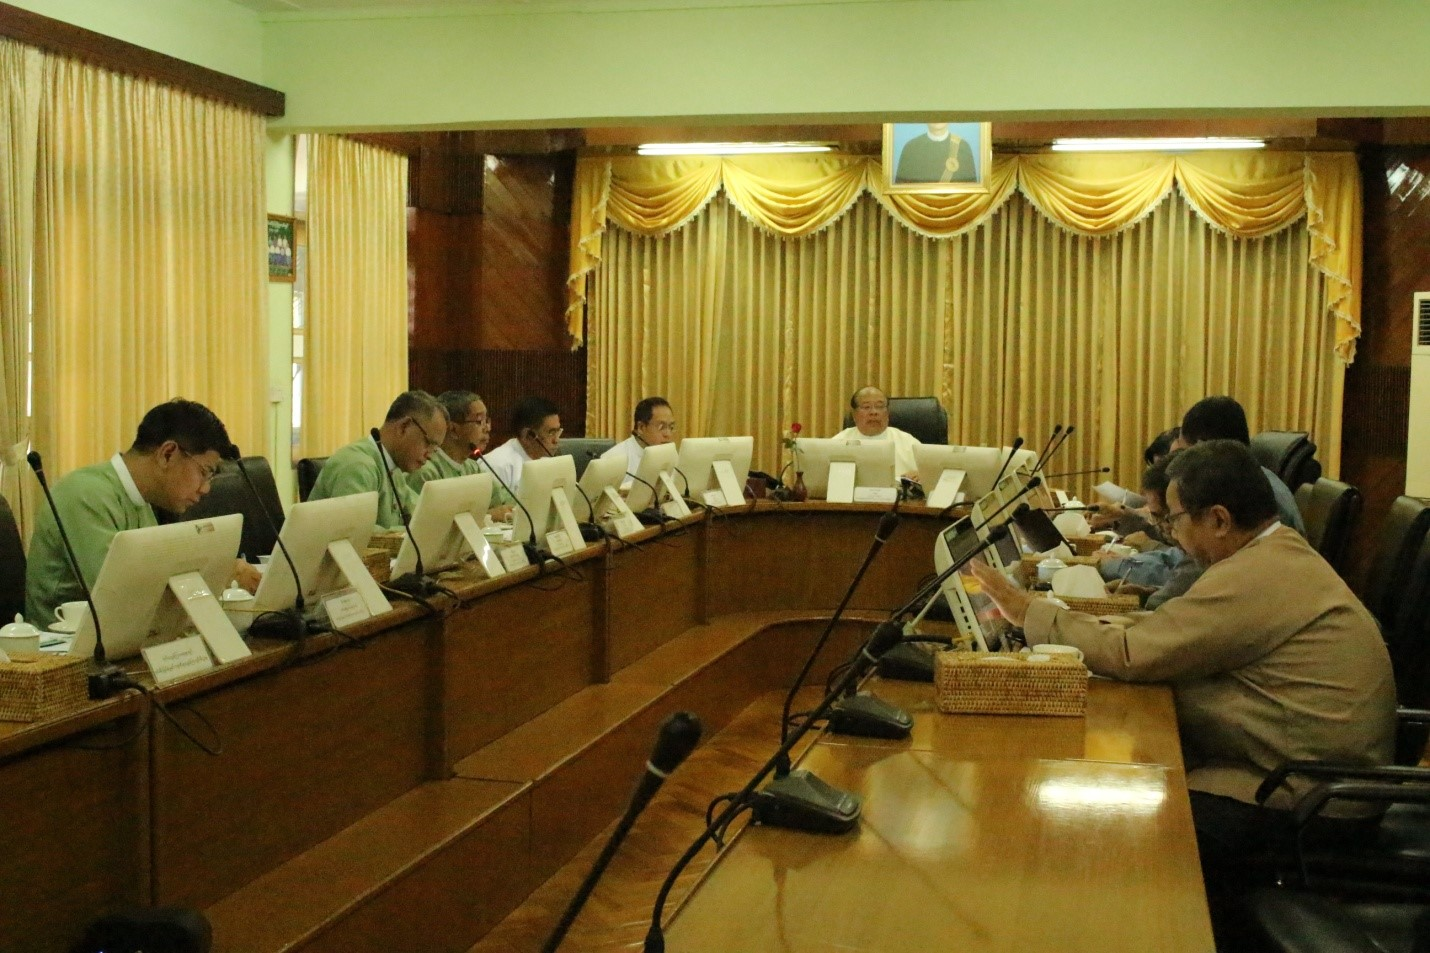 Myanmar Investment Commission (MIC) approved seven investment proposals with over 1,100 job opportunities